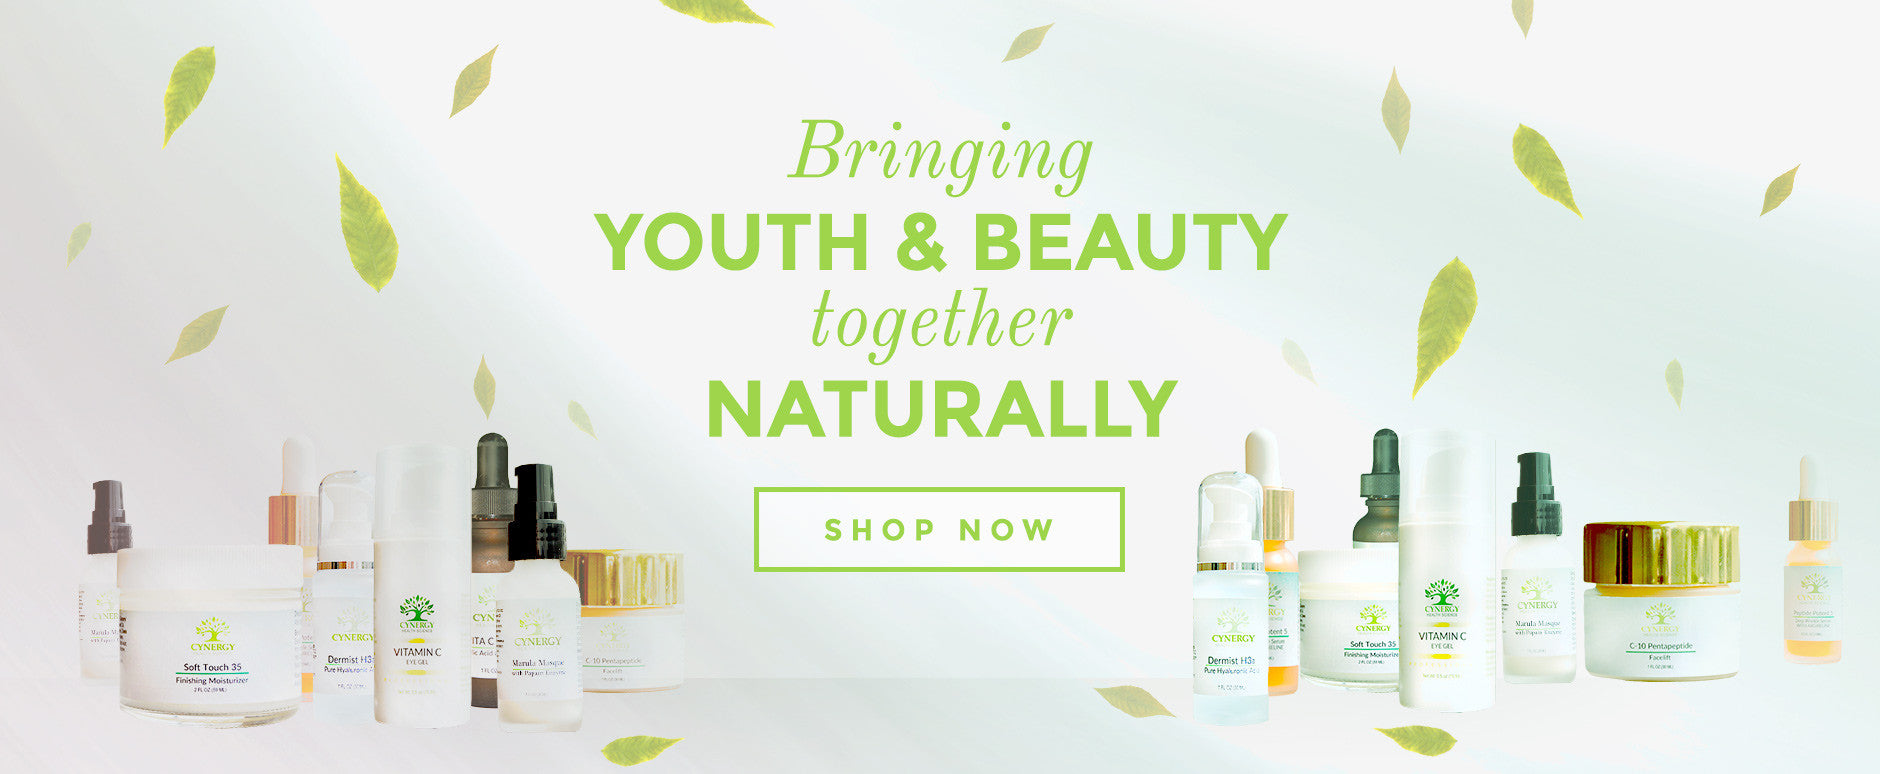 Natural Youth Beauty